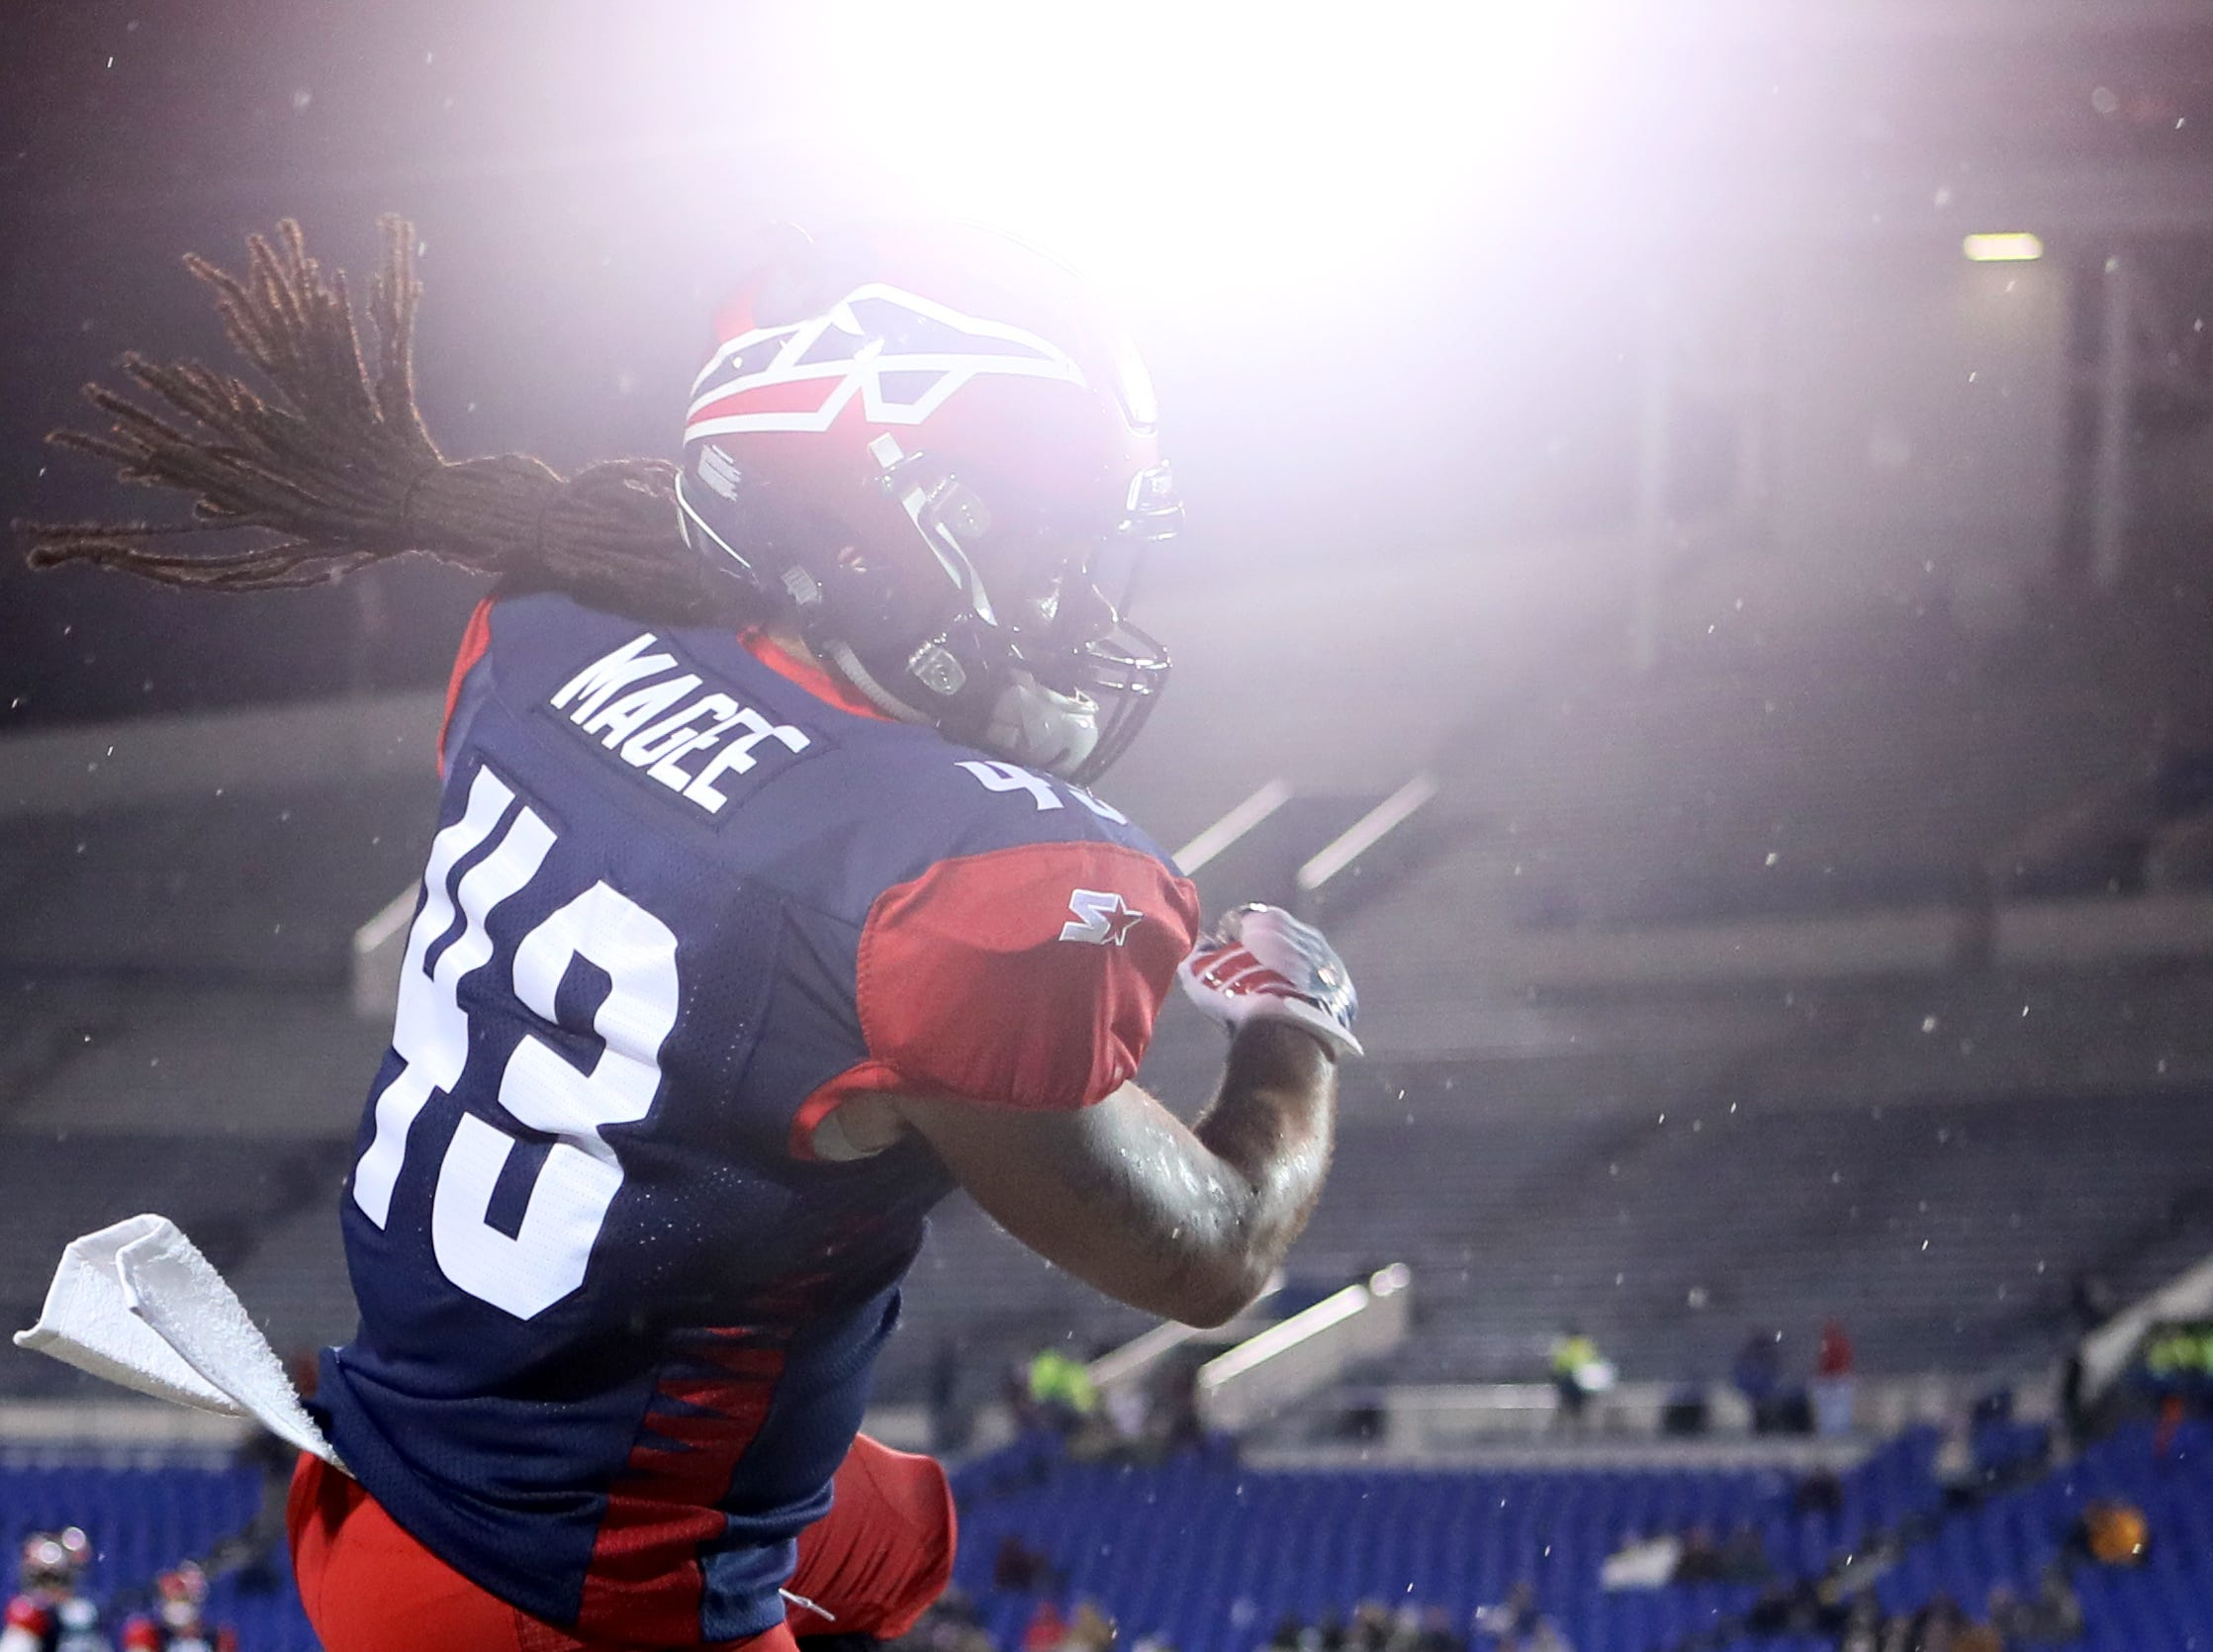 Memphis Express running back Terrence Magee warms up before their game against the Arizona Hotshots at the Liberty Bowl on Saturday, Feb. 16, 2019.